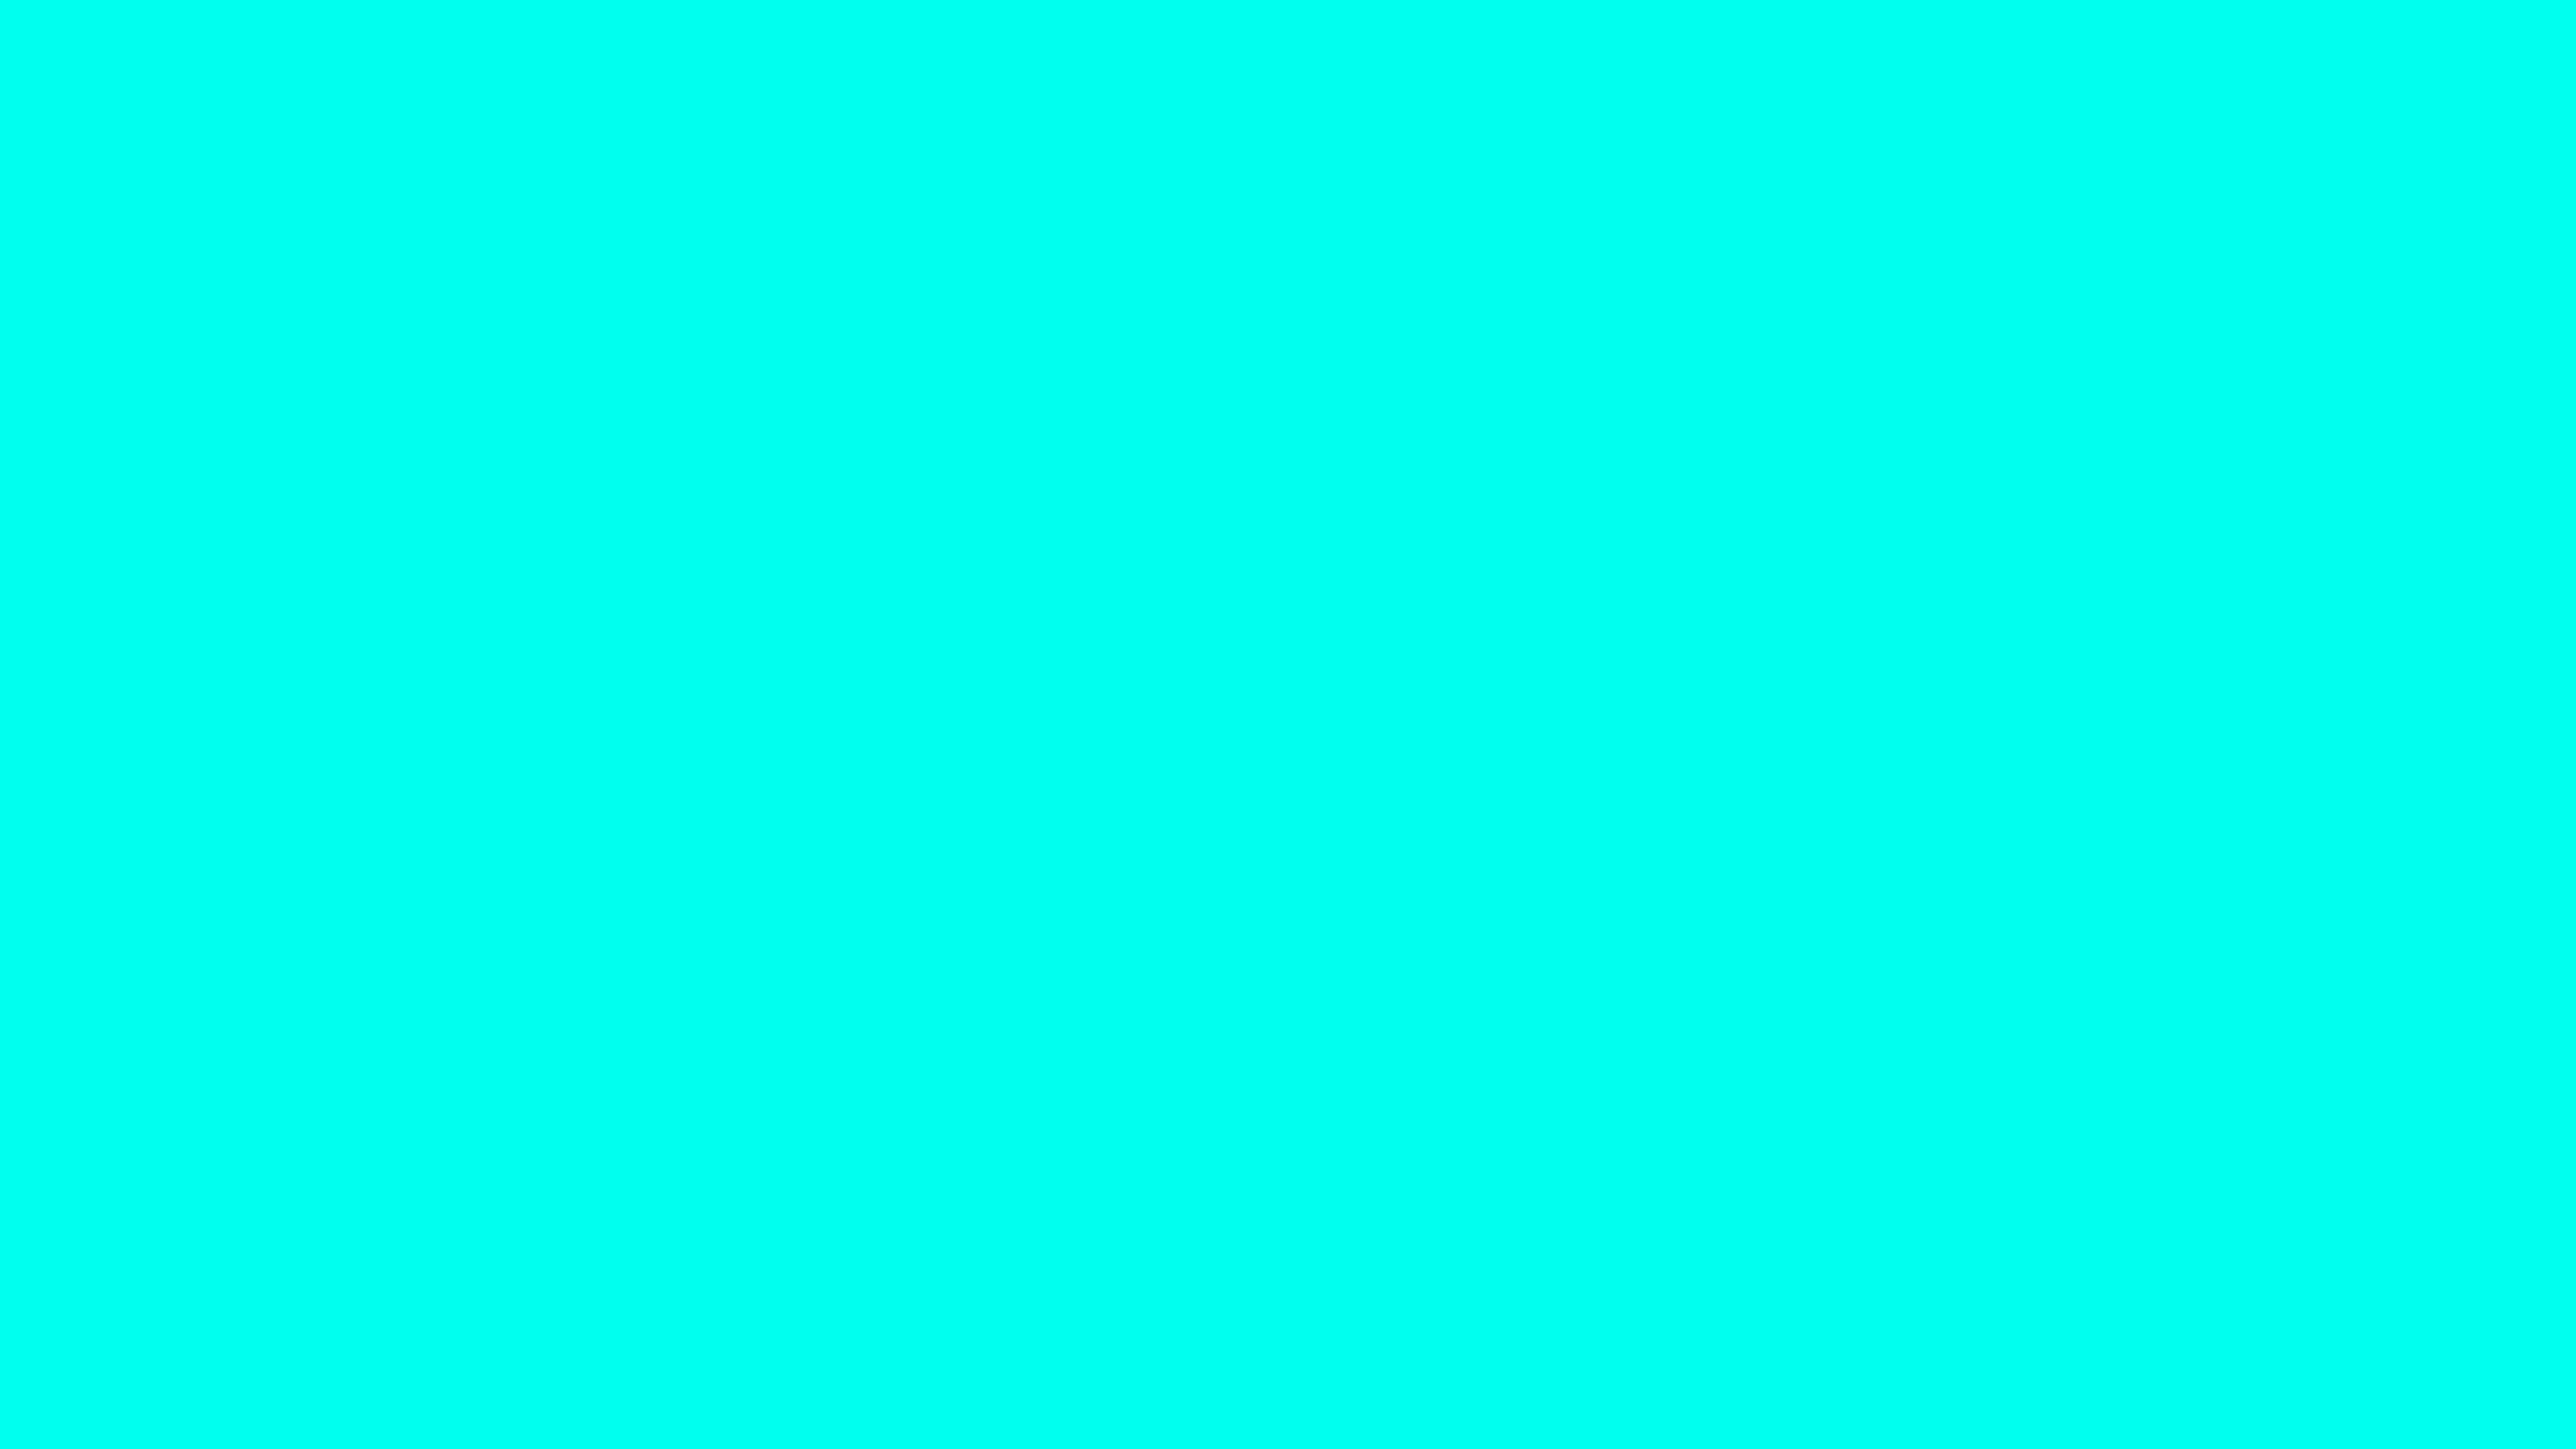 4096x2304 Turquoise Blue Solid Color Background